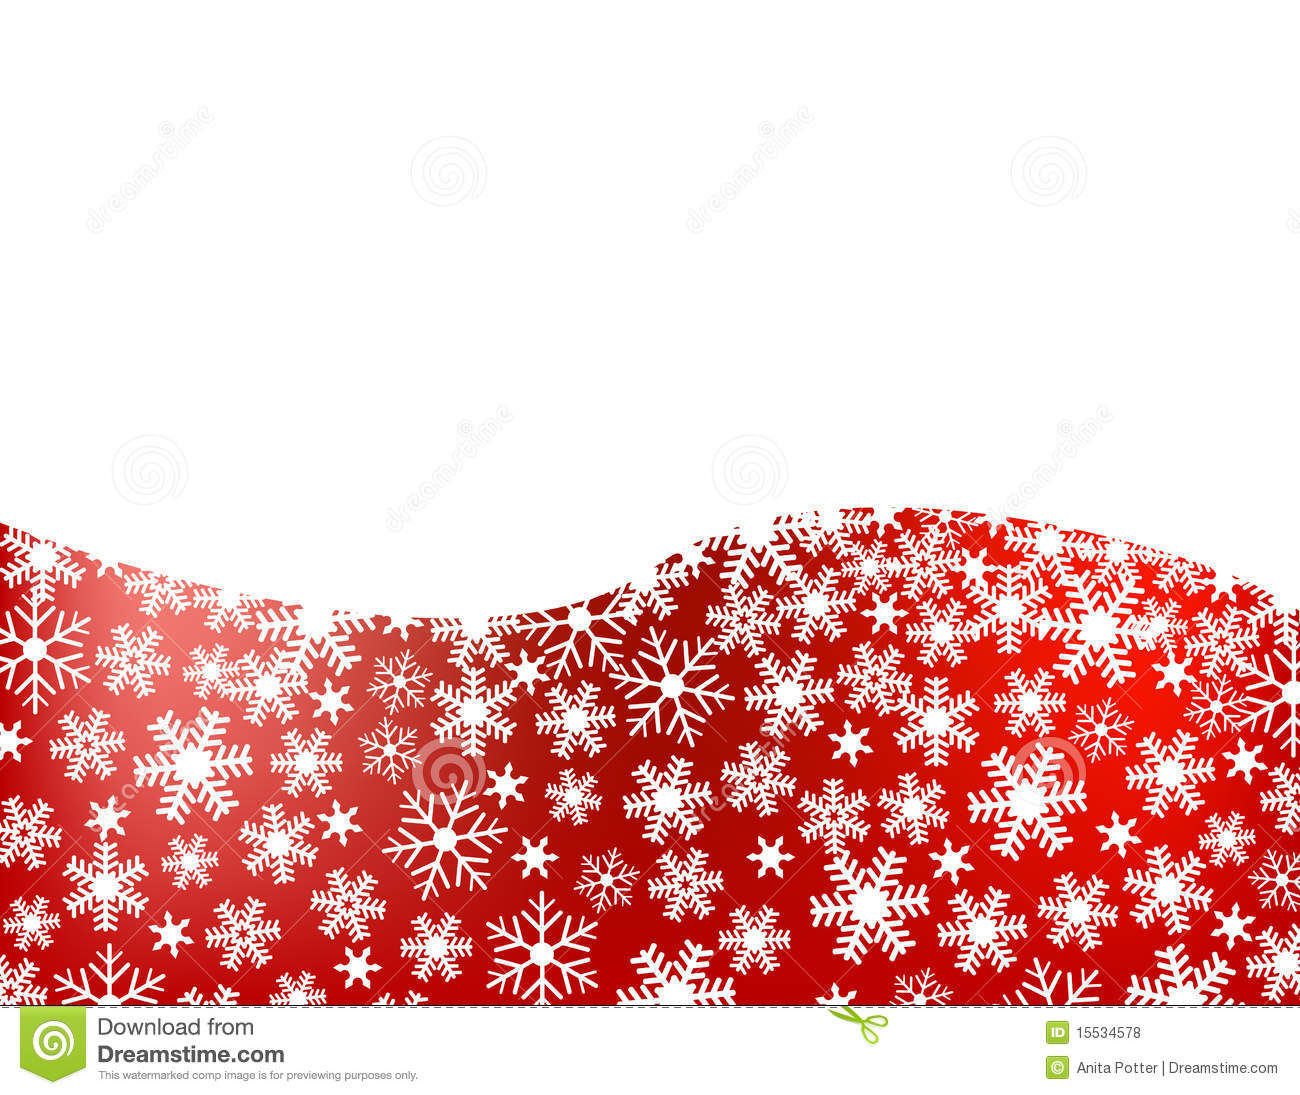 Christmas Wallpaper Snow Falling Red Snowflake Background Stock Vector Illustration Of